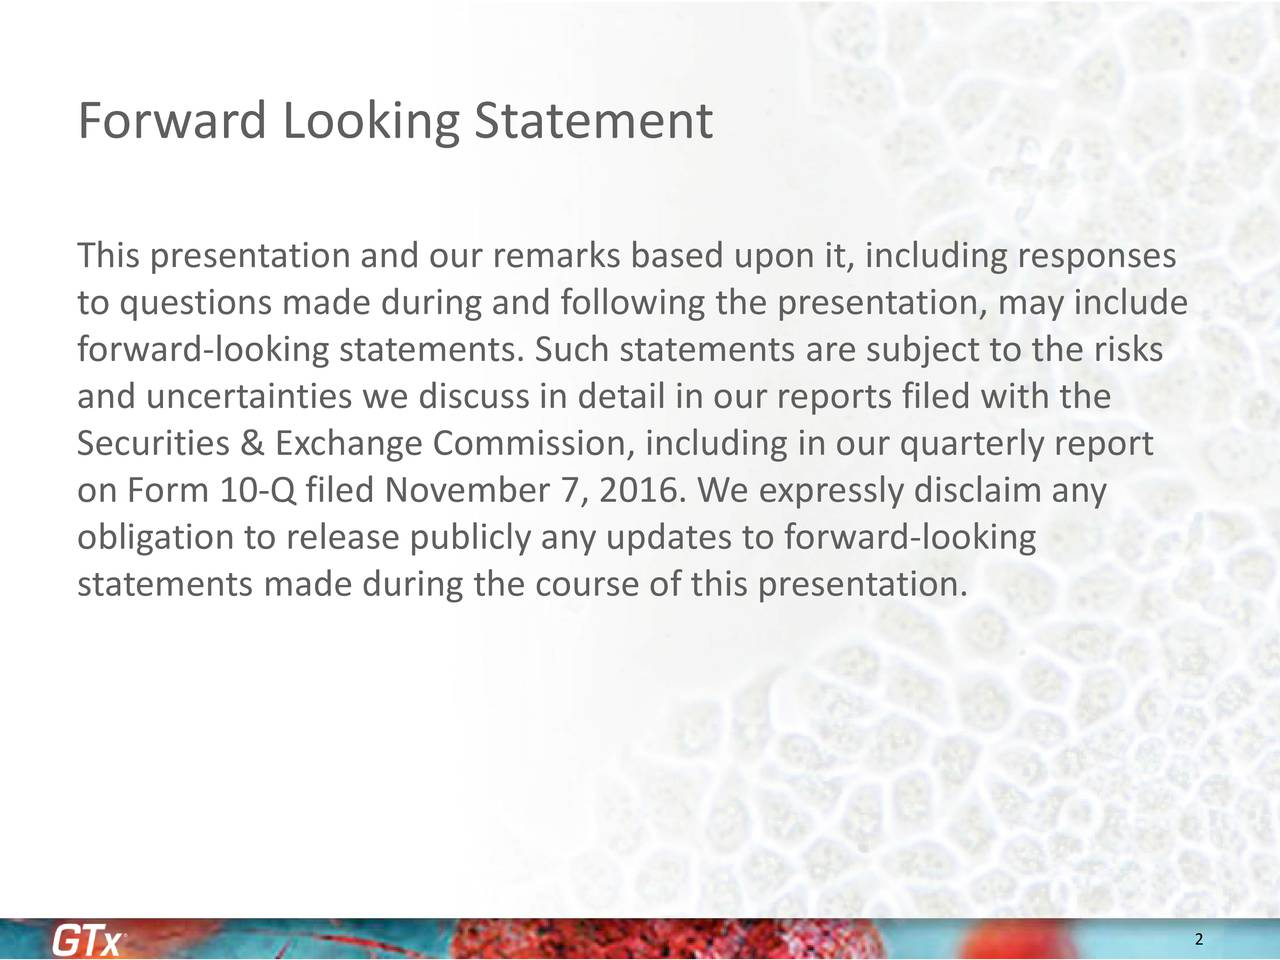 This presentation and our remarks based upon it, including responses to questions made during and following the presentation, may include forward-looking statements. Such statements are subject to the risks and uncertainties we discuss in detail in our reports filed with the Securities & Exchange Commission, including in our quarterly report on Form 10-Q filed November 7, 2016. We expressly disclaim any obligation to release publicly any updates to forward-looking statements made during the course of this presentation.